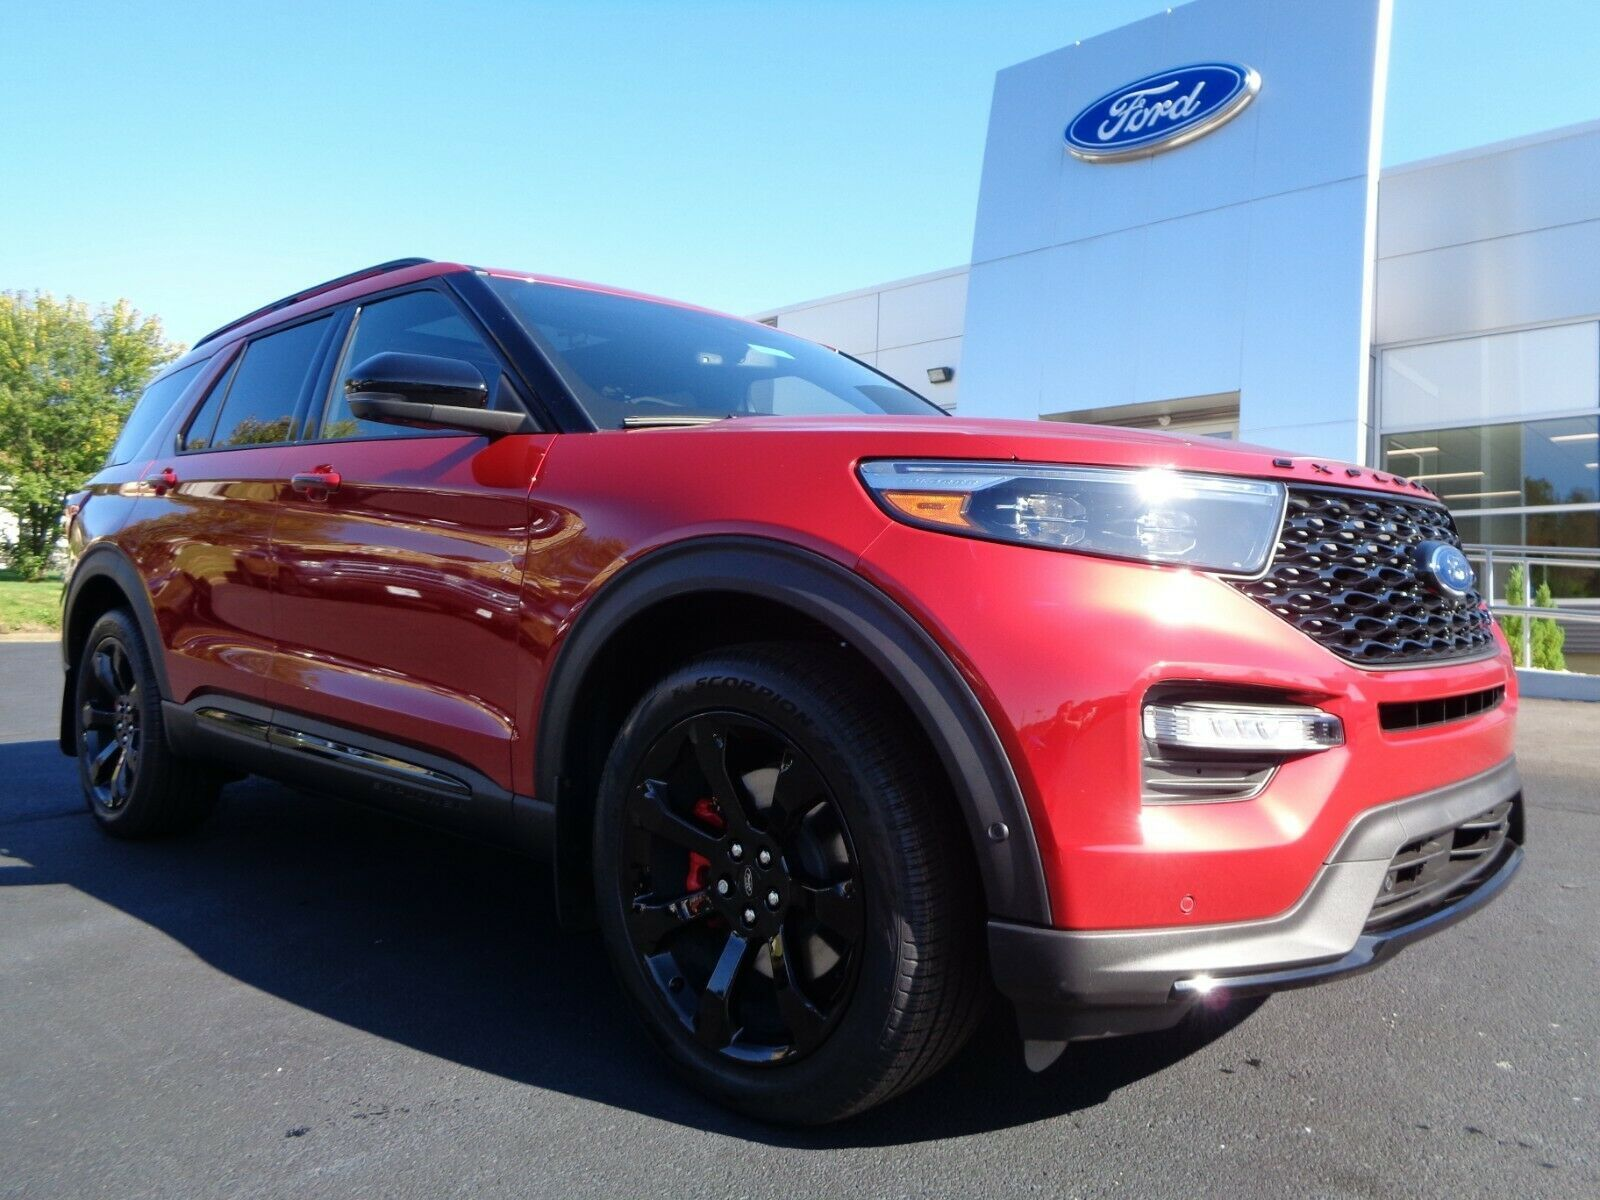 Awesome Used 2020 Ford Explorer New 2020 St Edition High Performance Rapid Red New 2020 Ford Explorer St High Performance In 2020 Ford Explorer 2020 Ford Explorer Ford